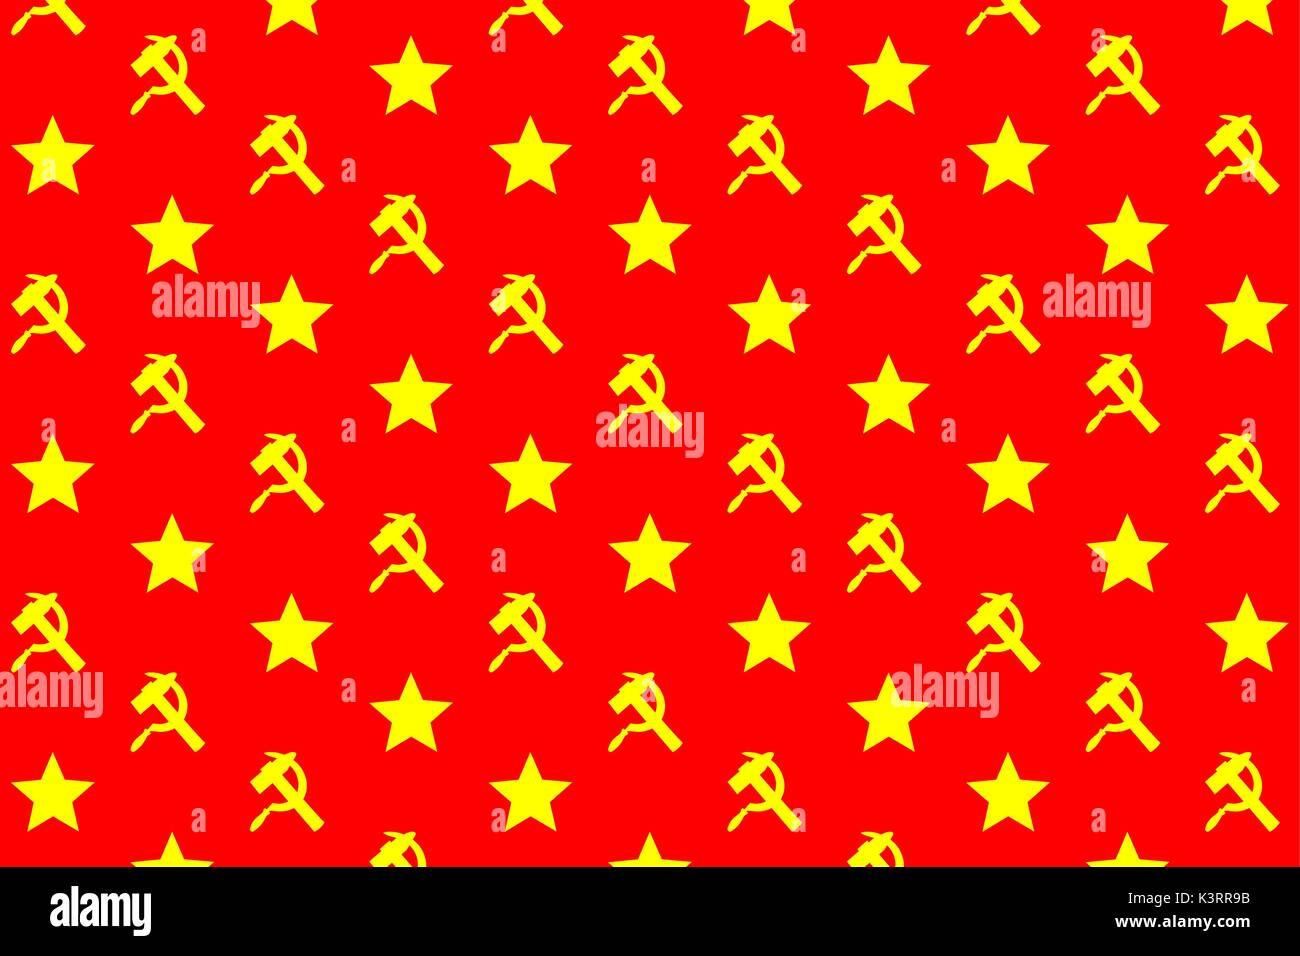 Star, sickle and hammer - yellow symbol on red background - vector pattern - Stock Vector